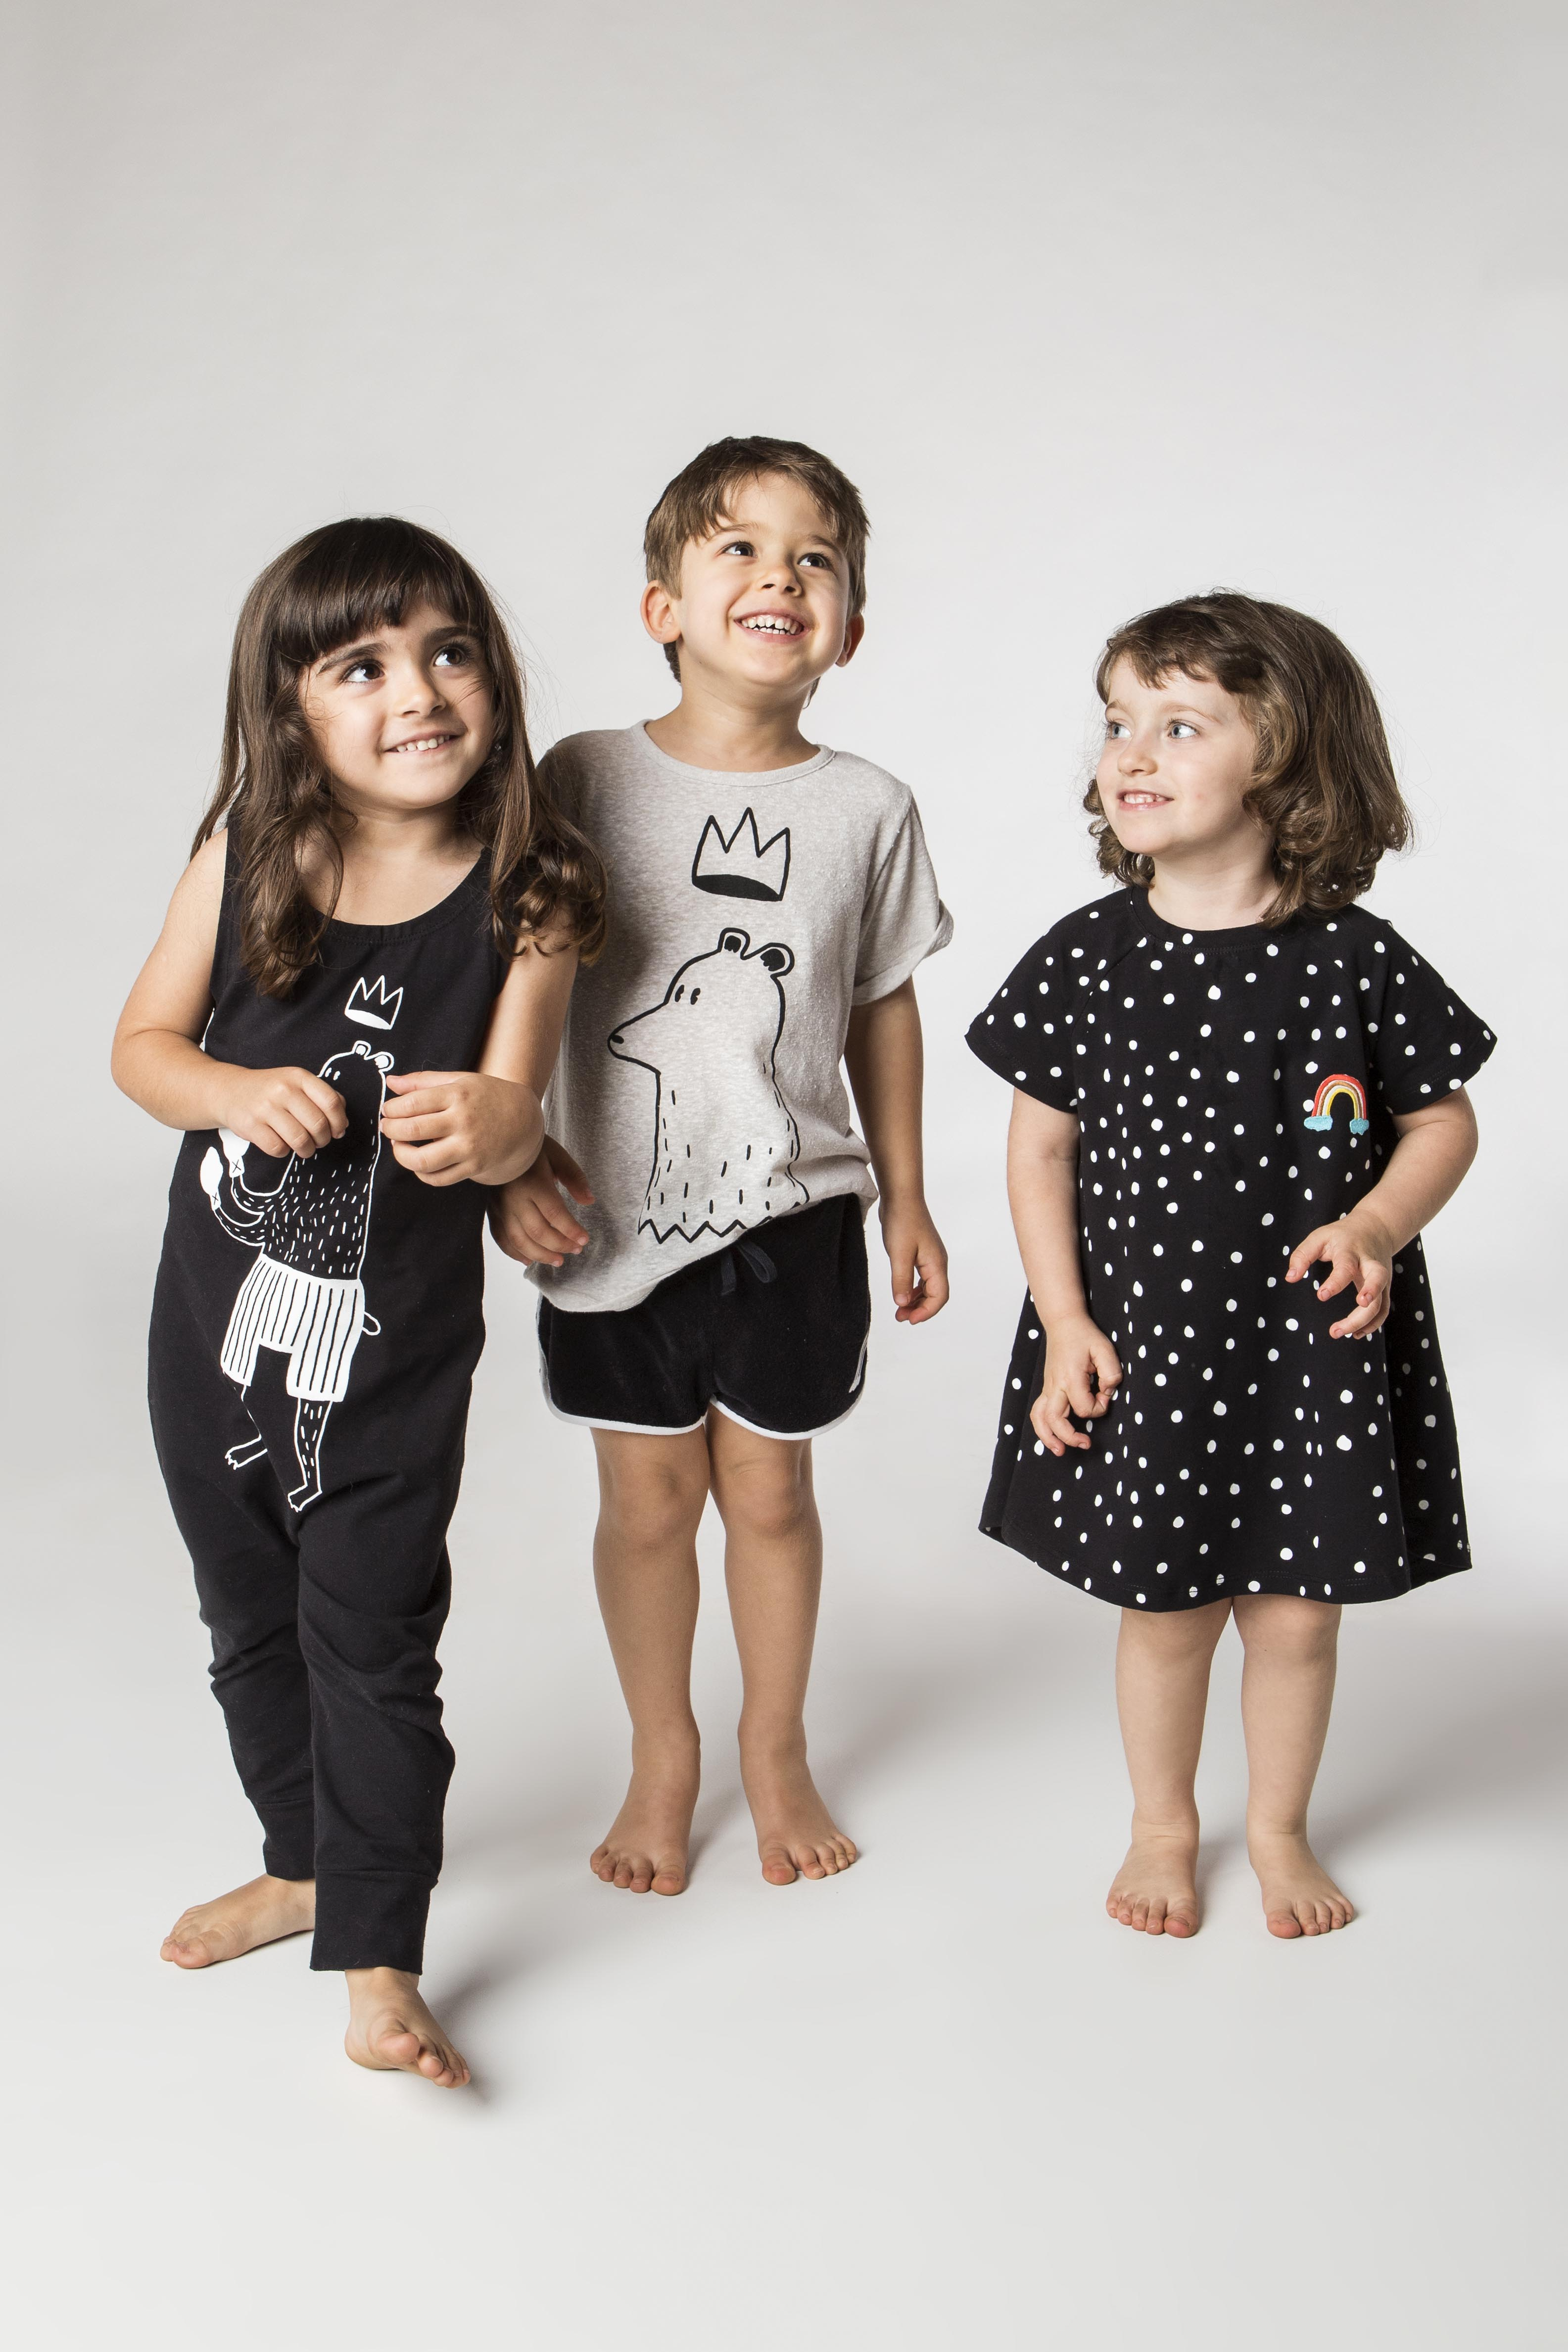 Fashion Kids Wallpapers High Quality | Download Free